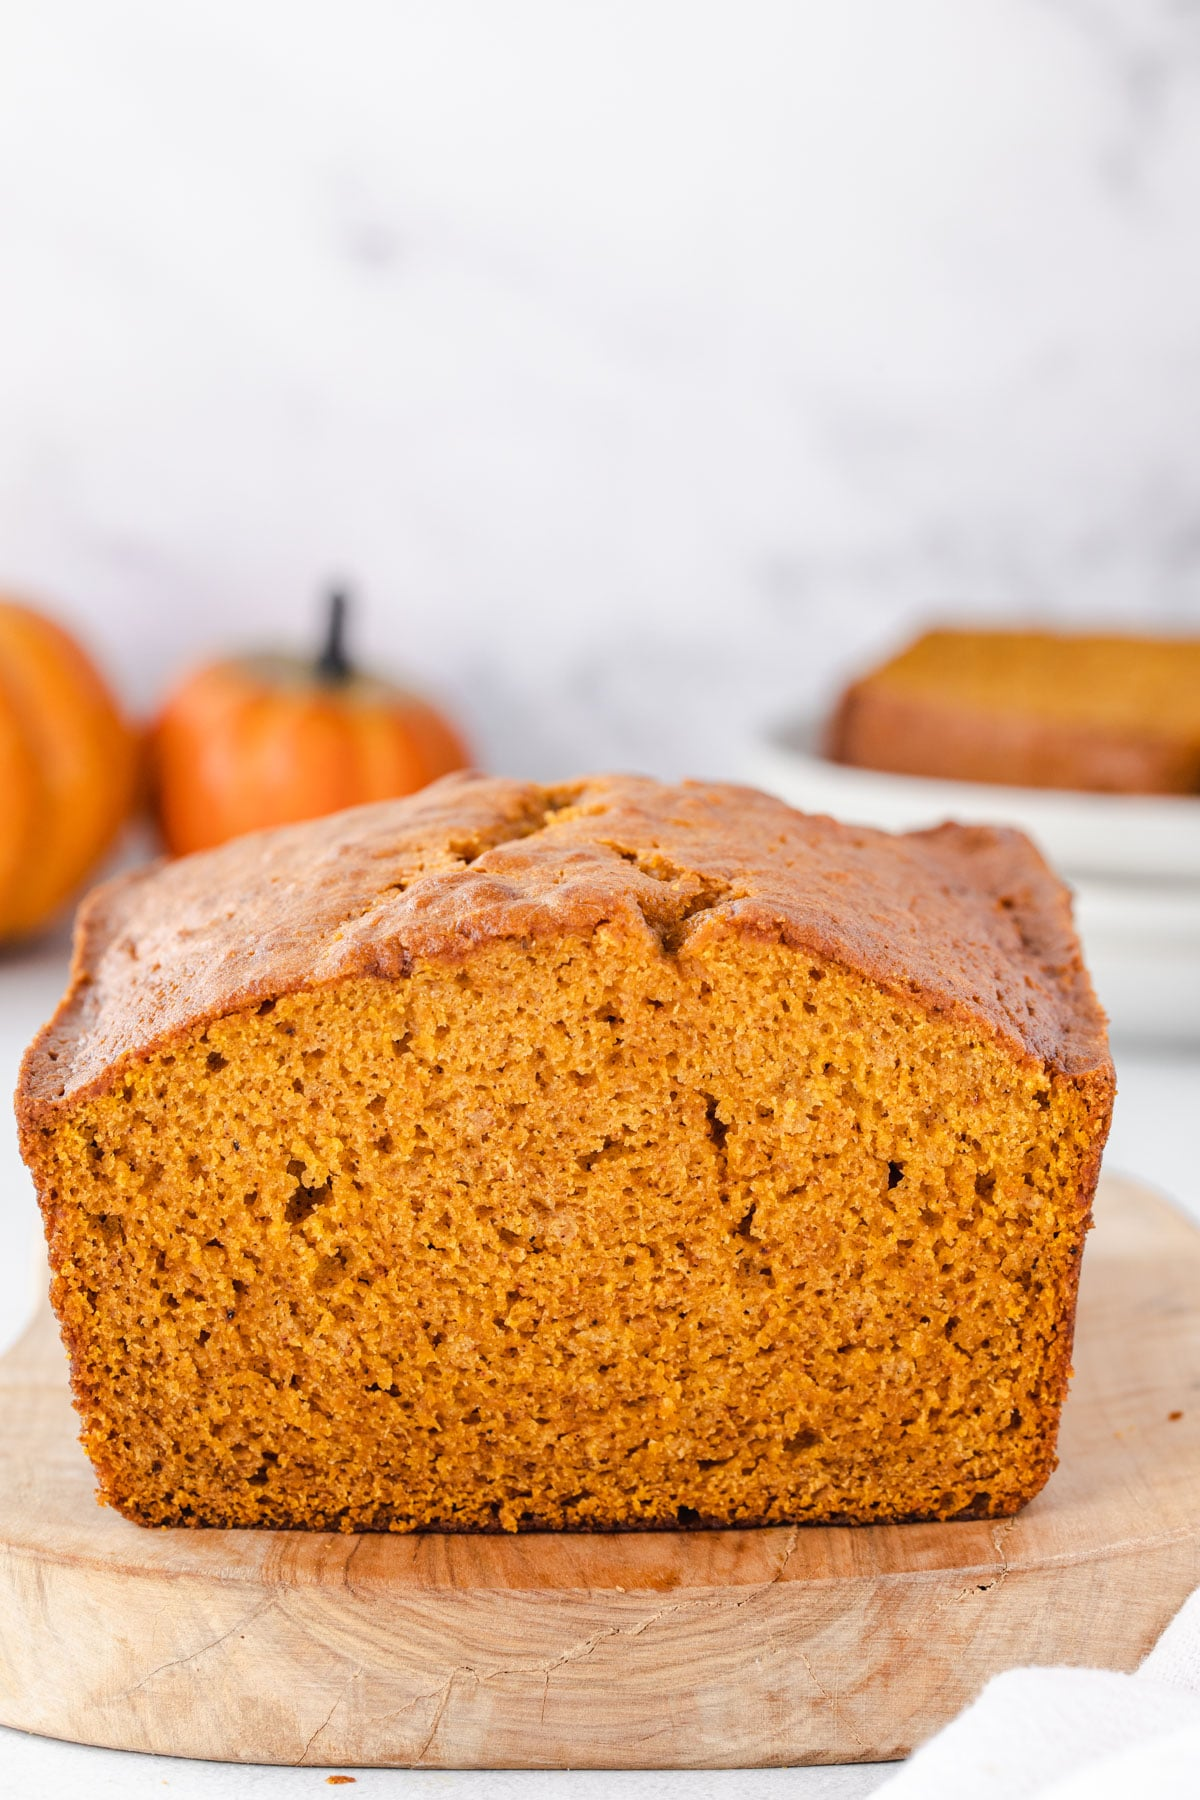 straight on view of a loaf of pumpkin bread with the first piece sliced off.